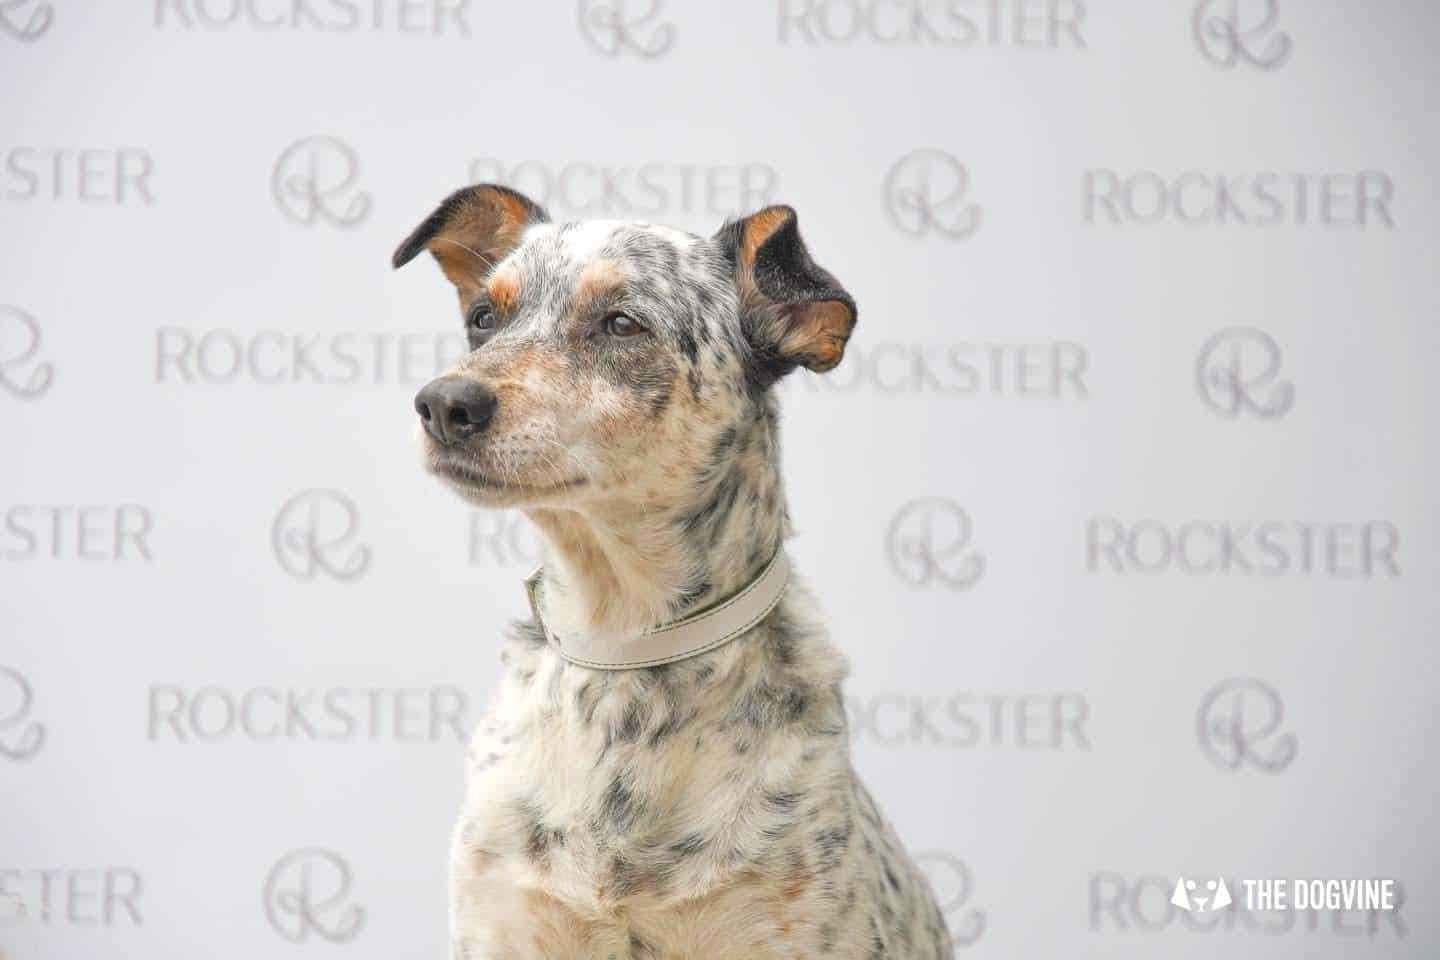 Crossbreeds & Rescue Dogs in the Spotlight at the Crossbreed Café - The Rockster